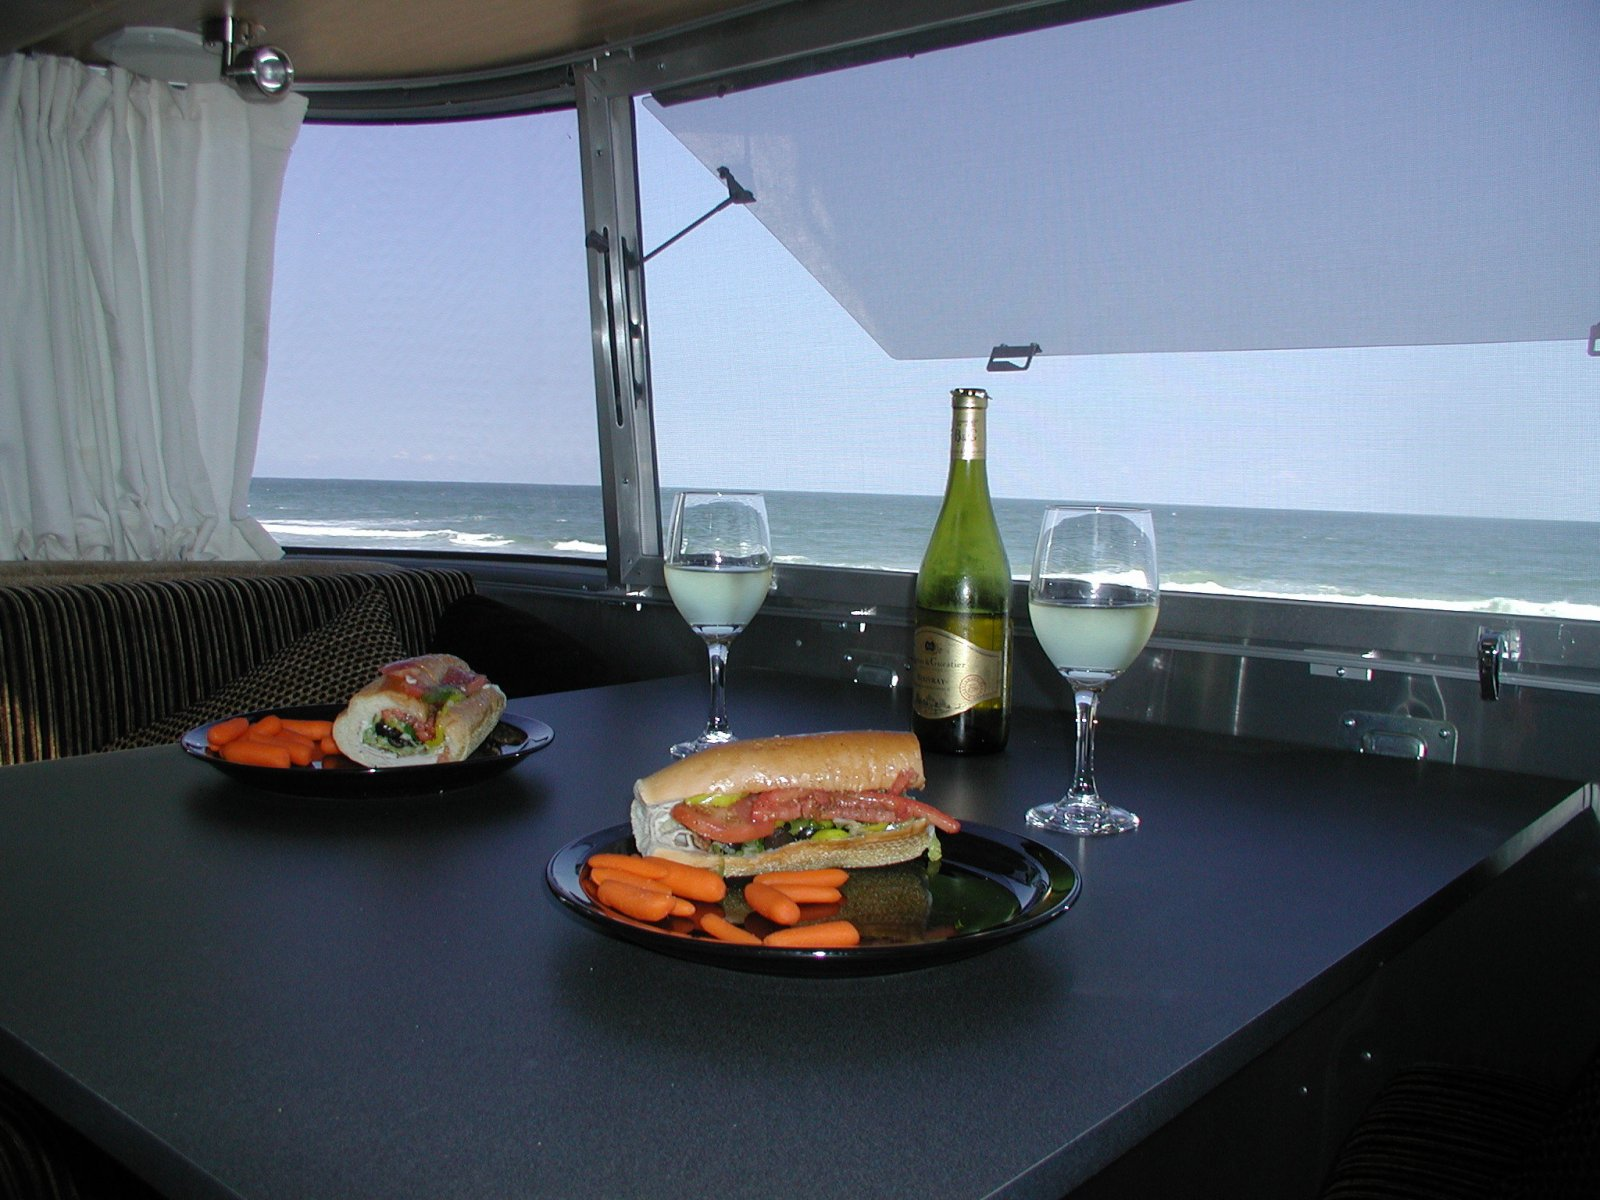 Click image for larger version  Name:BeverlyBeach1.jpg Views:194 Size:271.8 KB ID:137493